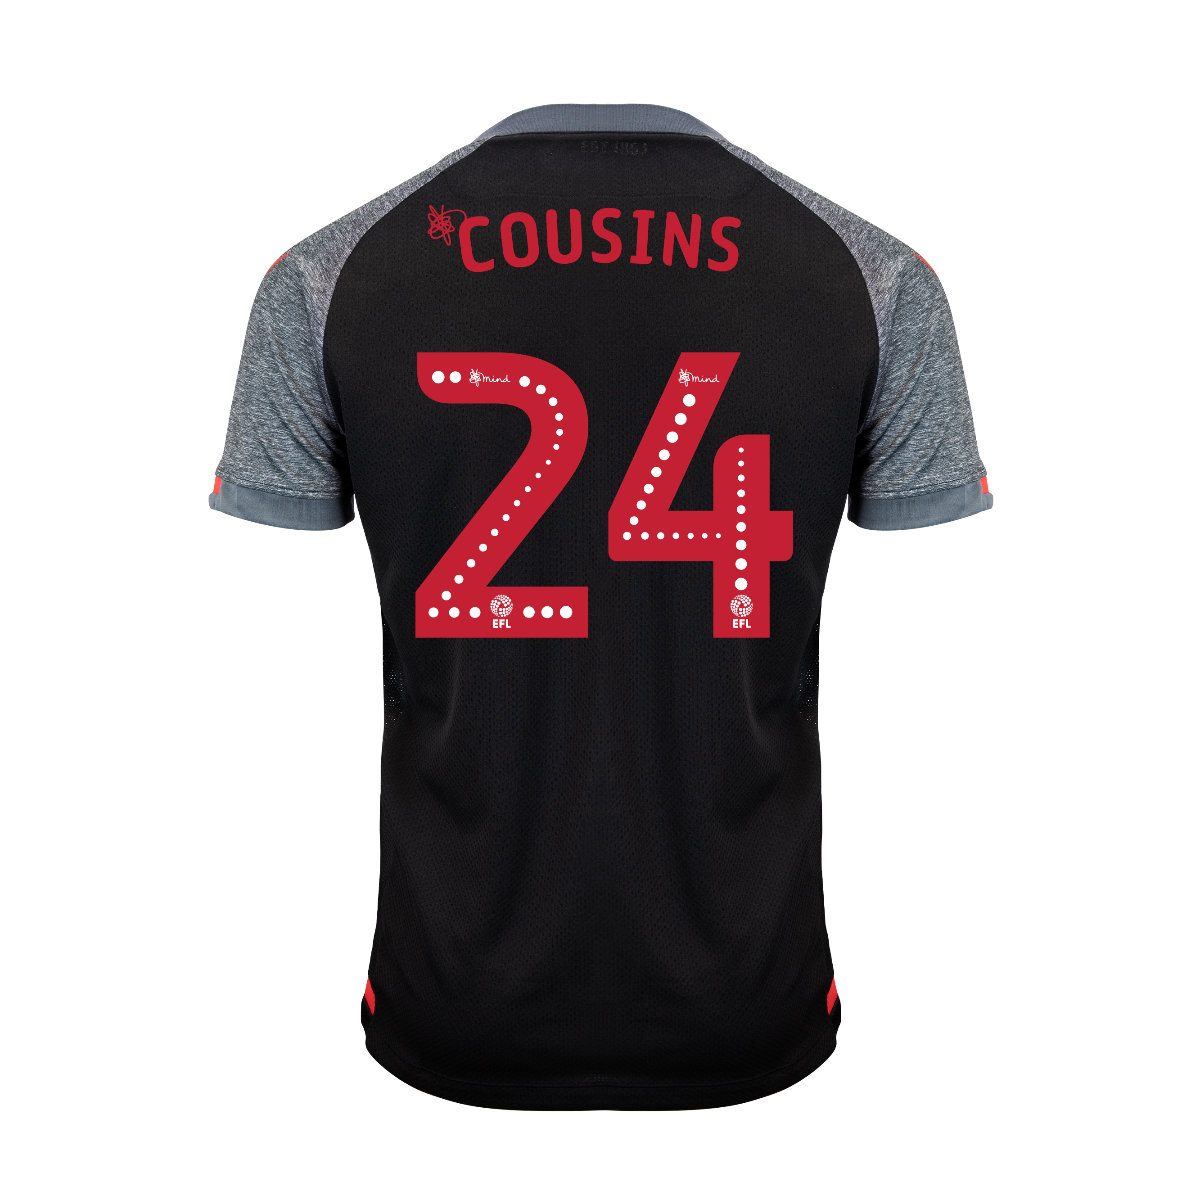 2019/20 Ladies Away Shirt - Cousins